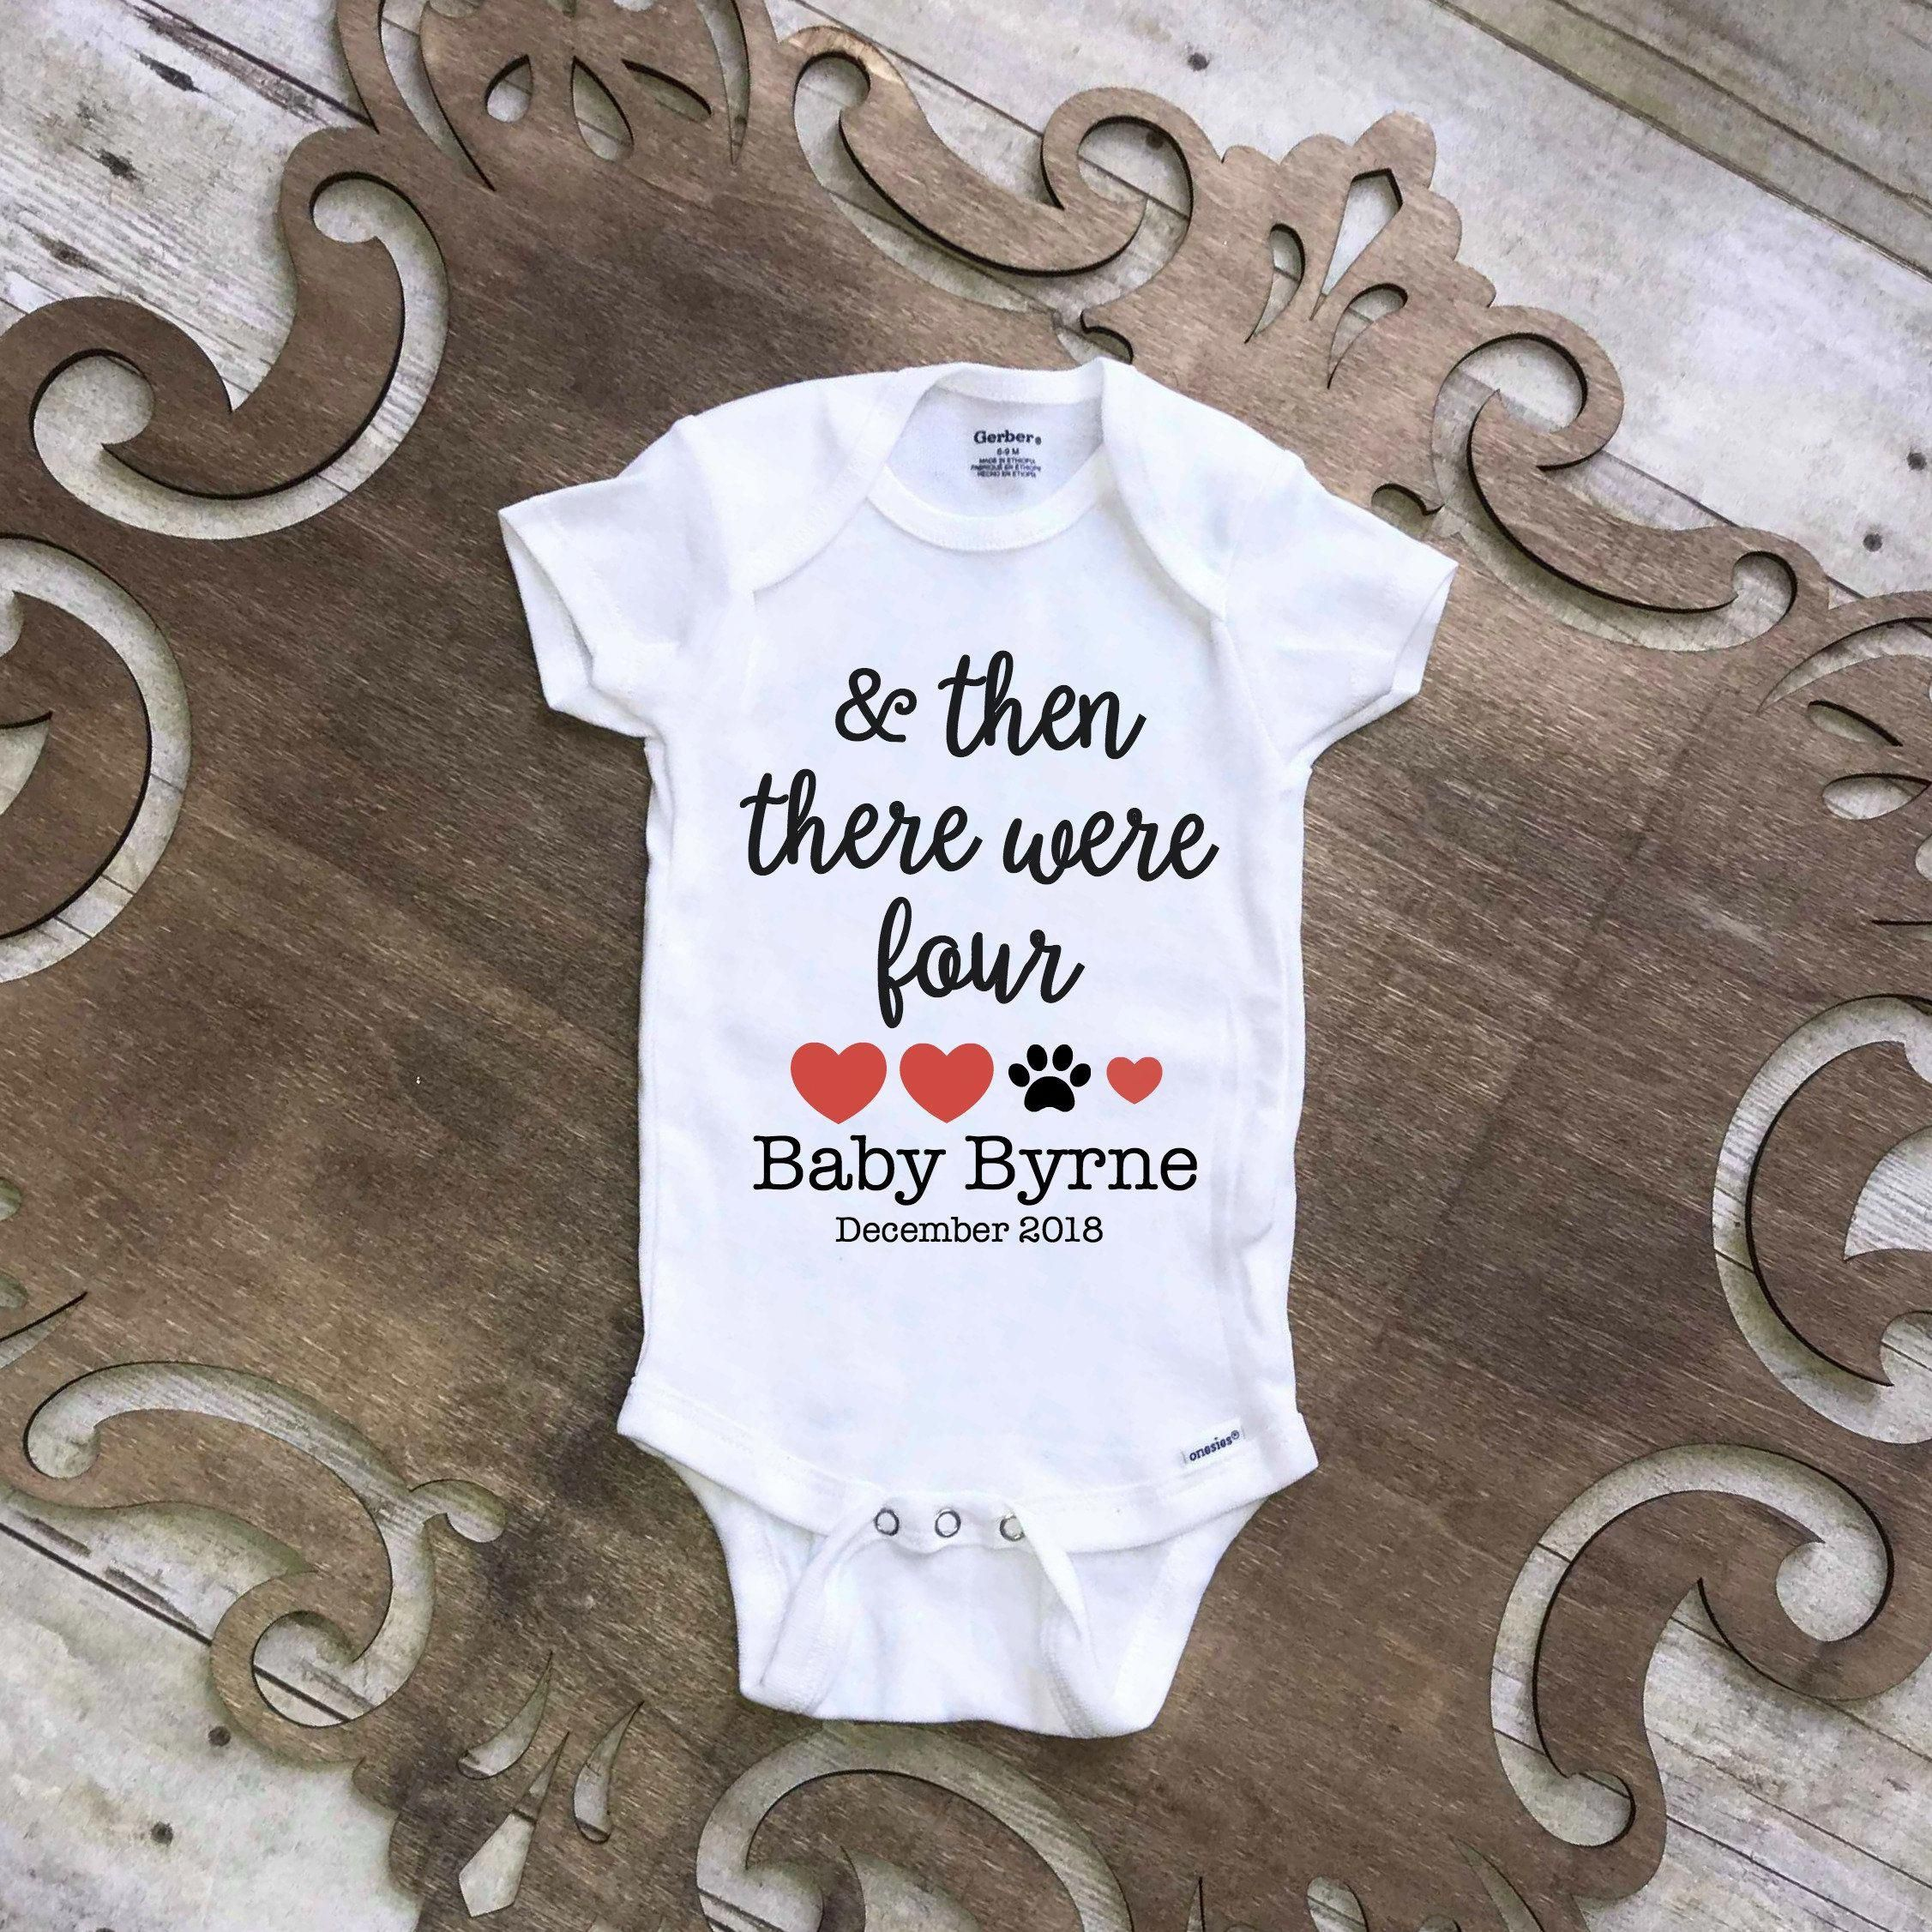 42716f942d498 This is the perfect pregnancy announcement onesie for anyone who considers  their fur baby a part of their family! #pregnancyclothes